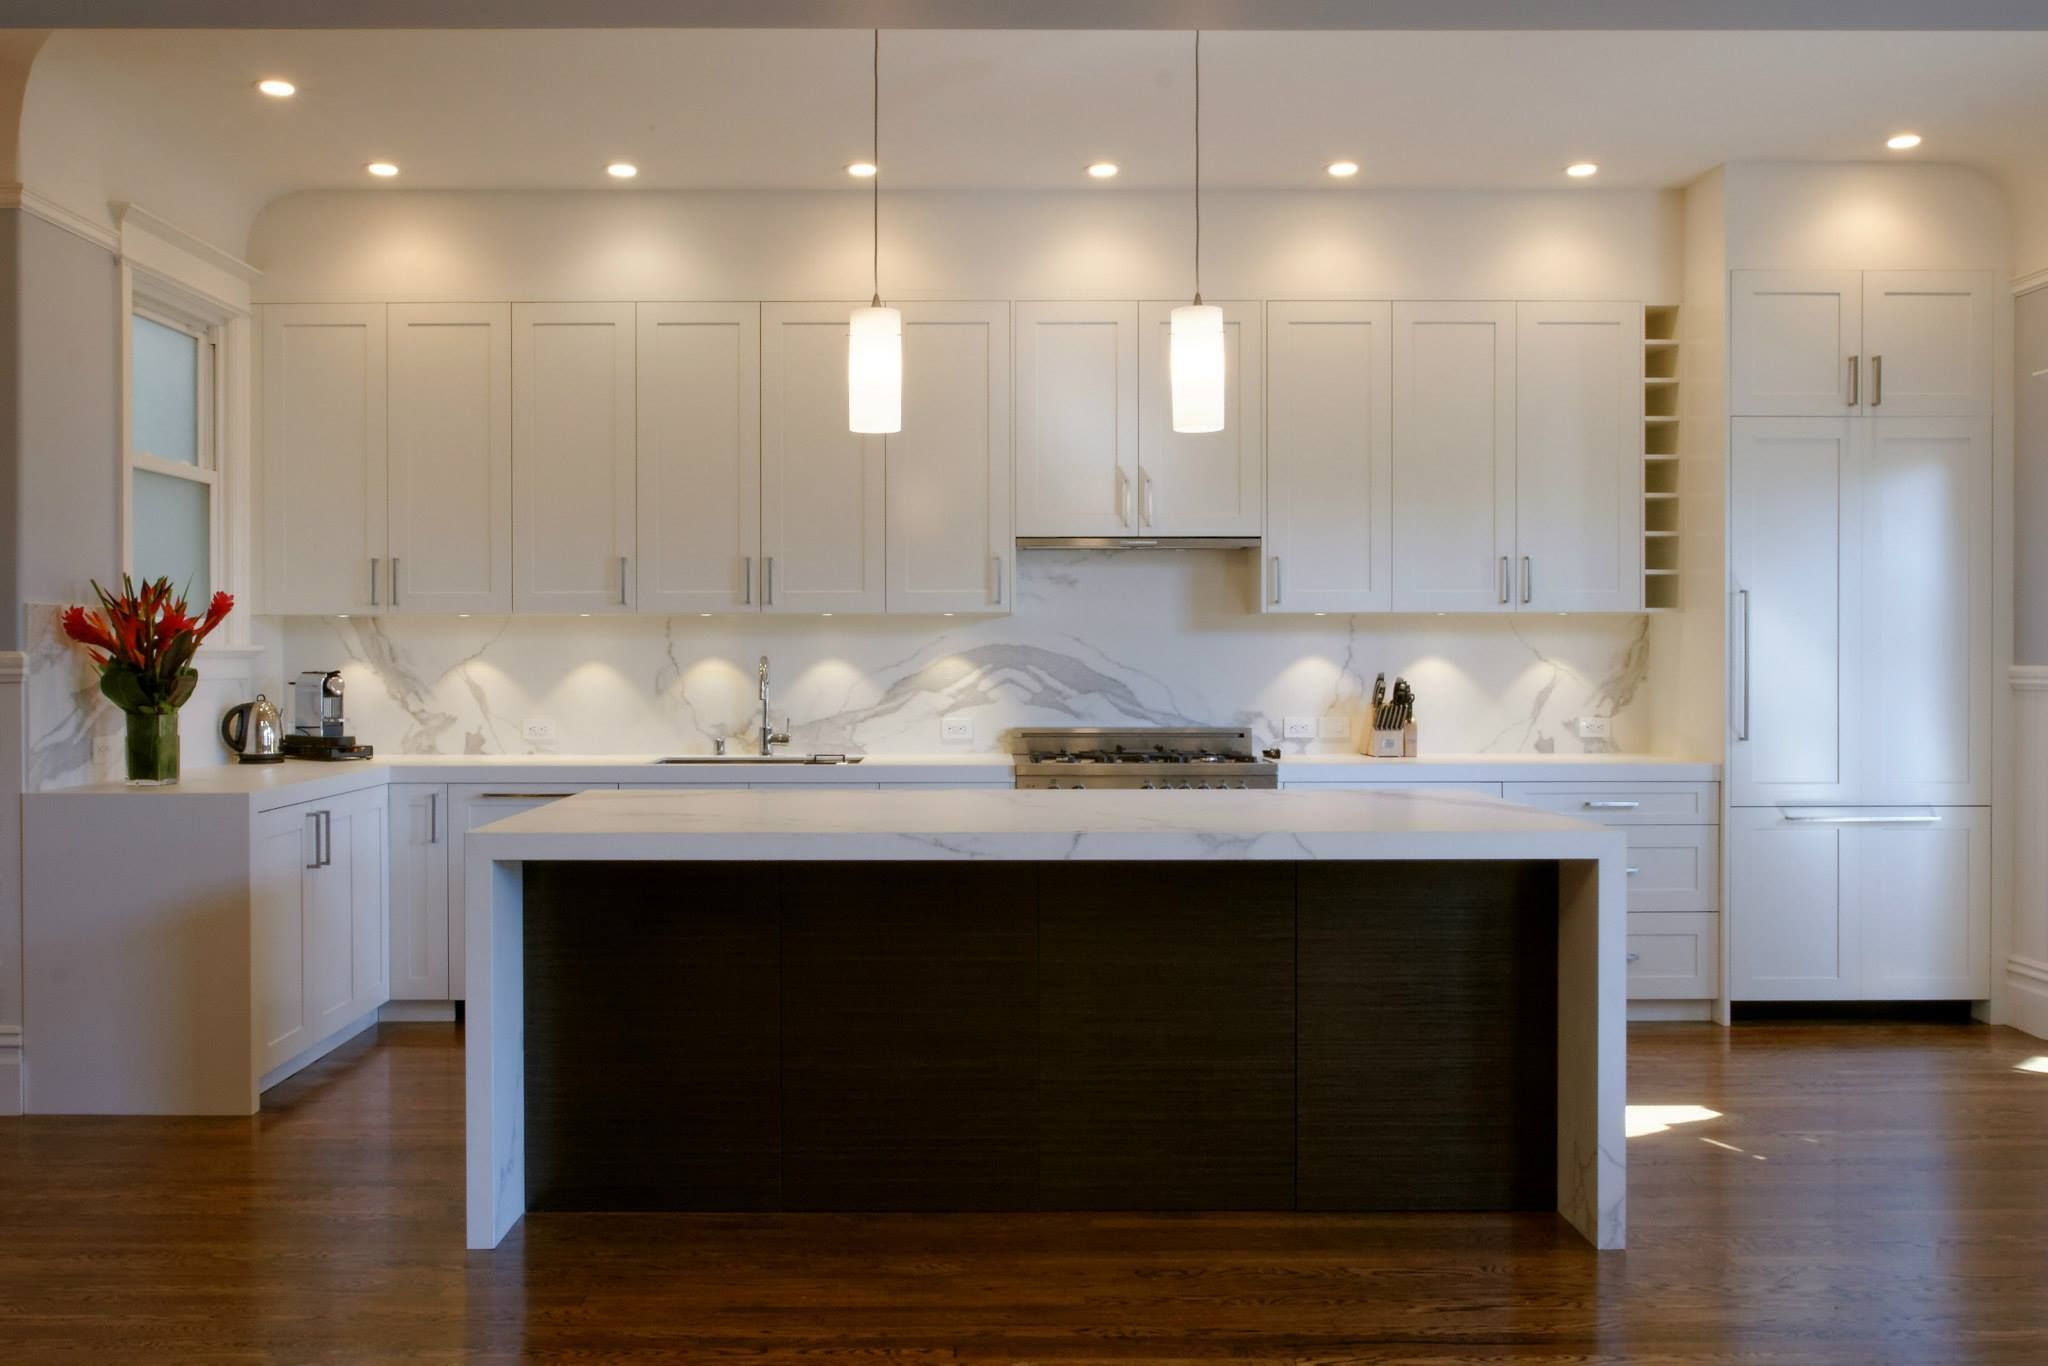 Modern Kitchen Design. Great Lighting With White And Brown Colour Scheme.  Working Wonderfully. Very Creative